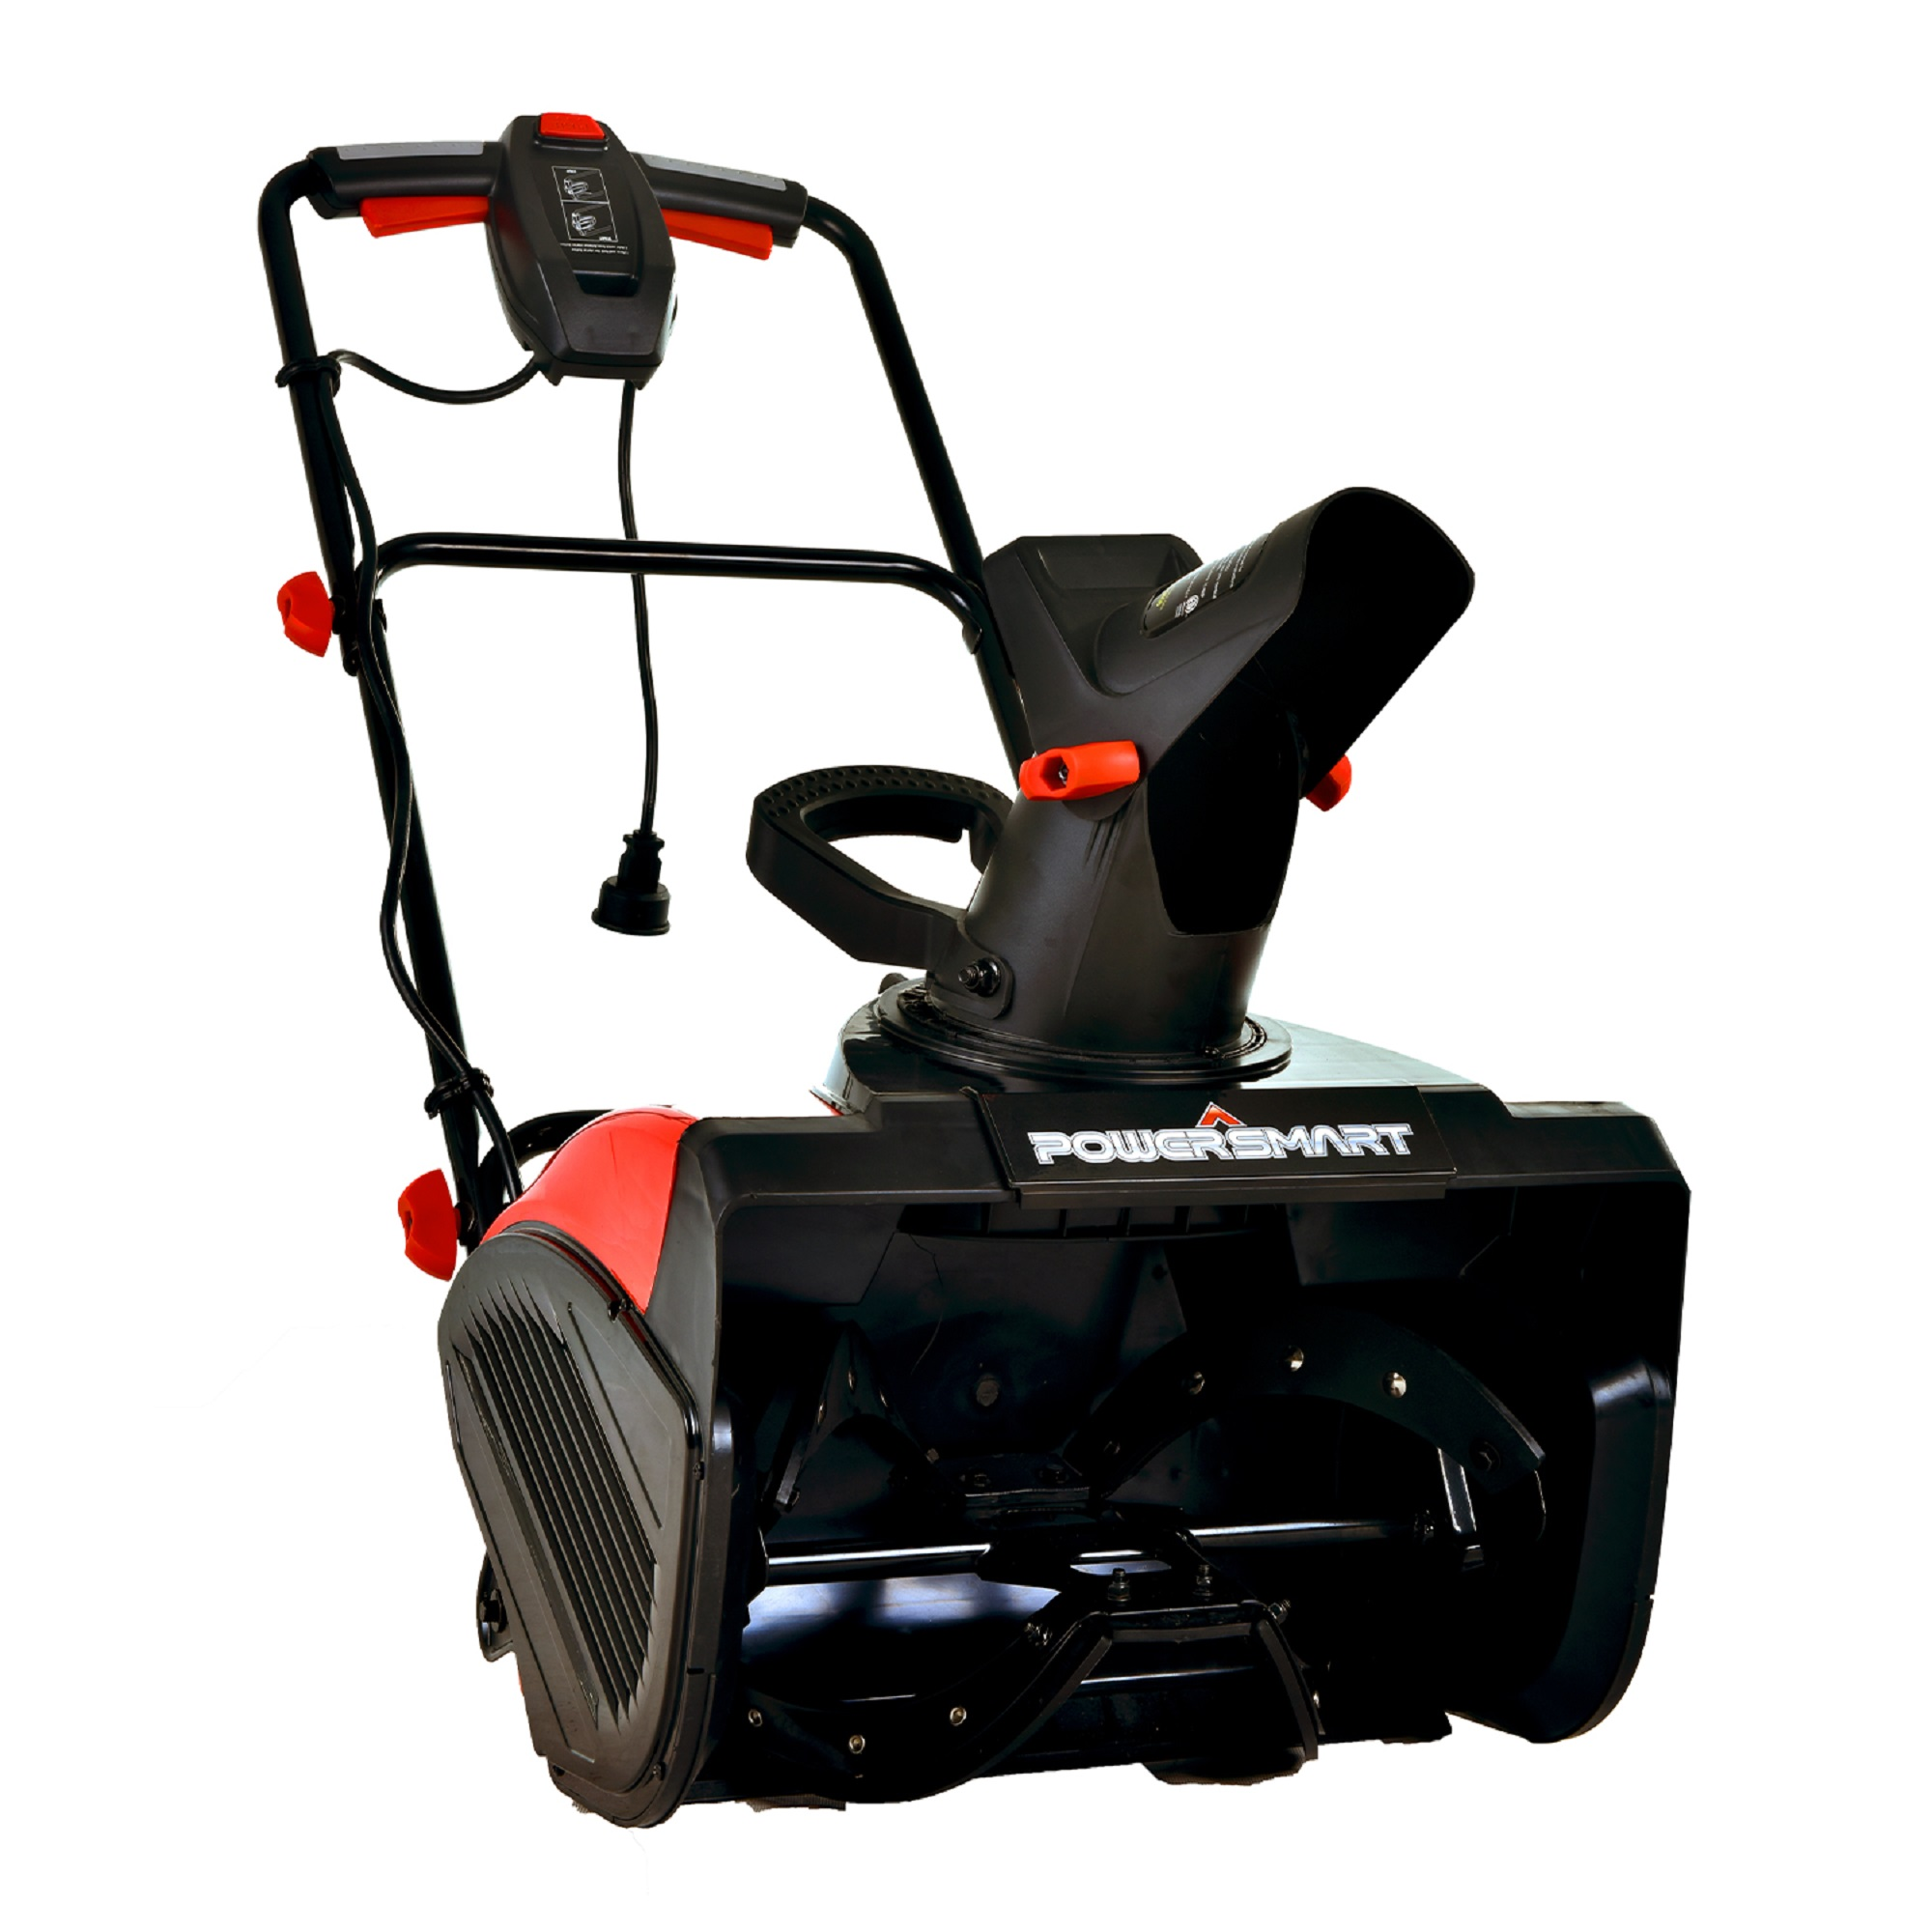 PowerSmart Corded 15 Amp Electric Snow Blower